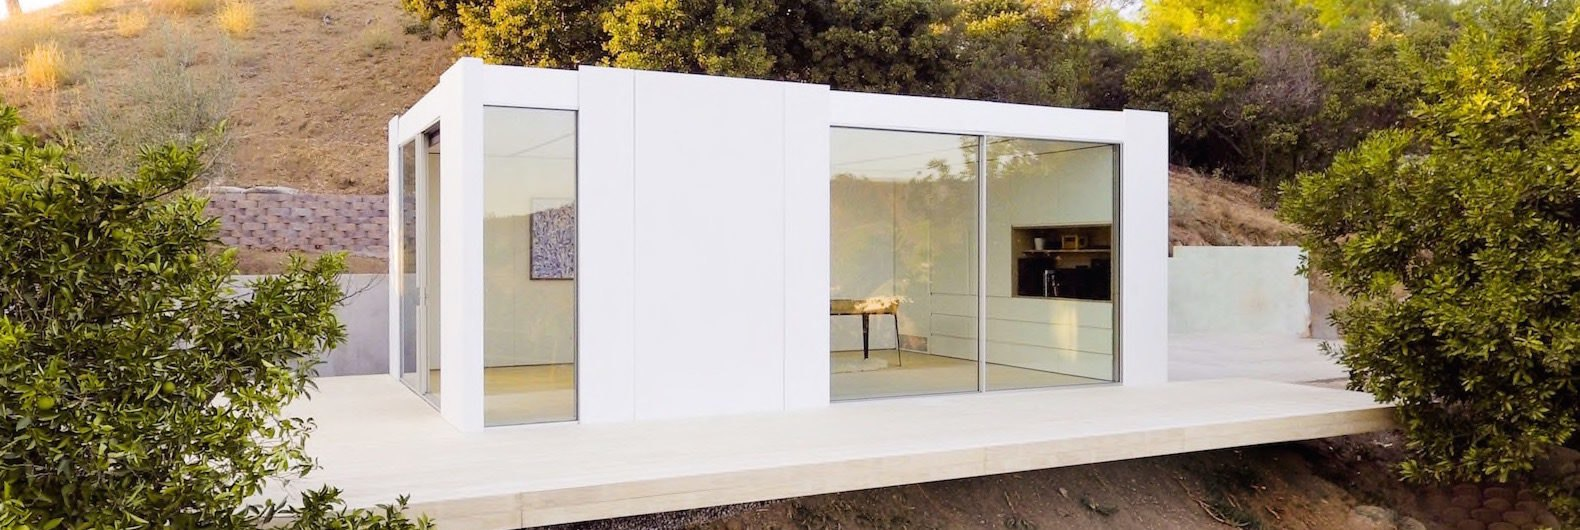 "Cover installs its first prefab dwelling ""for the masses"" in L.A. ..."